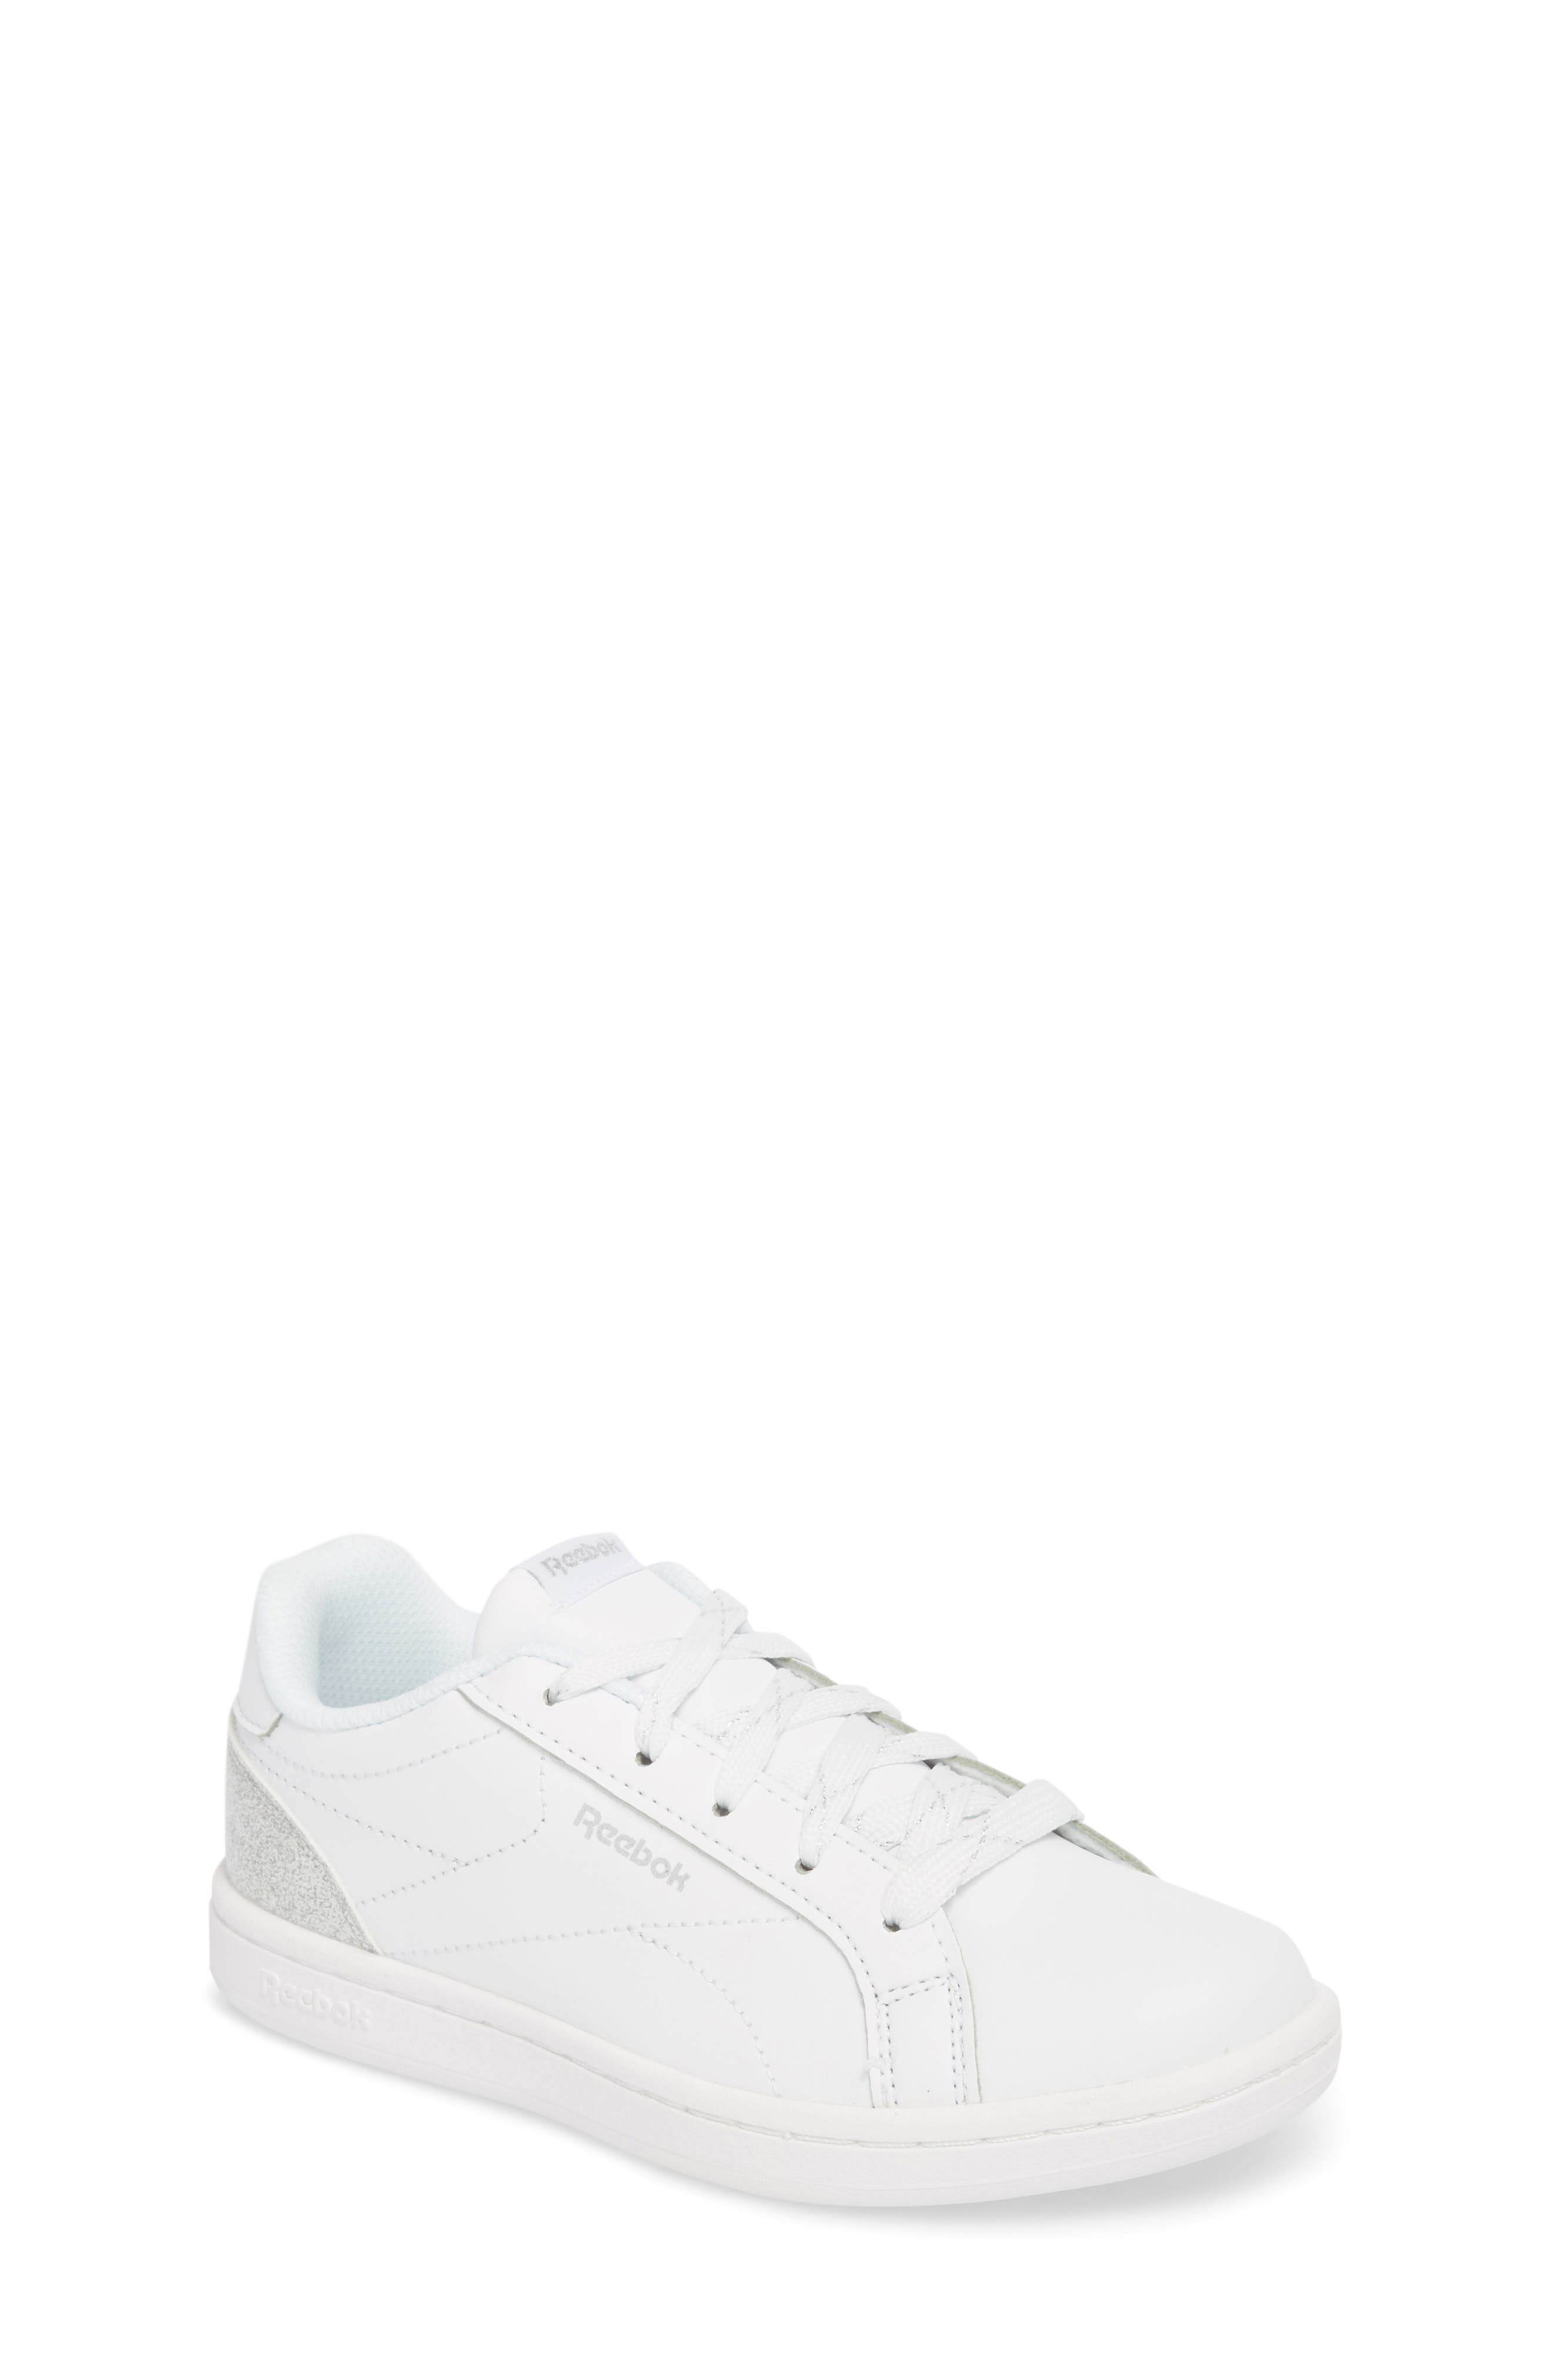 Royal Complete CLN Sneaker,                             Main thumbnail 1, color,                             White